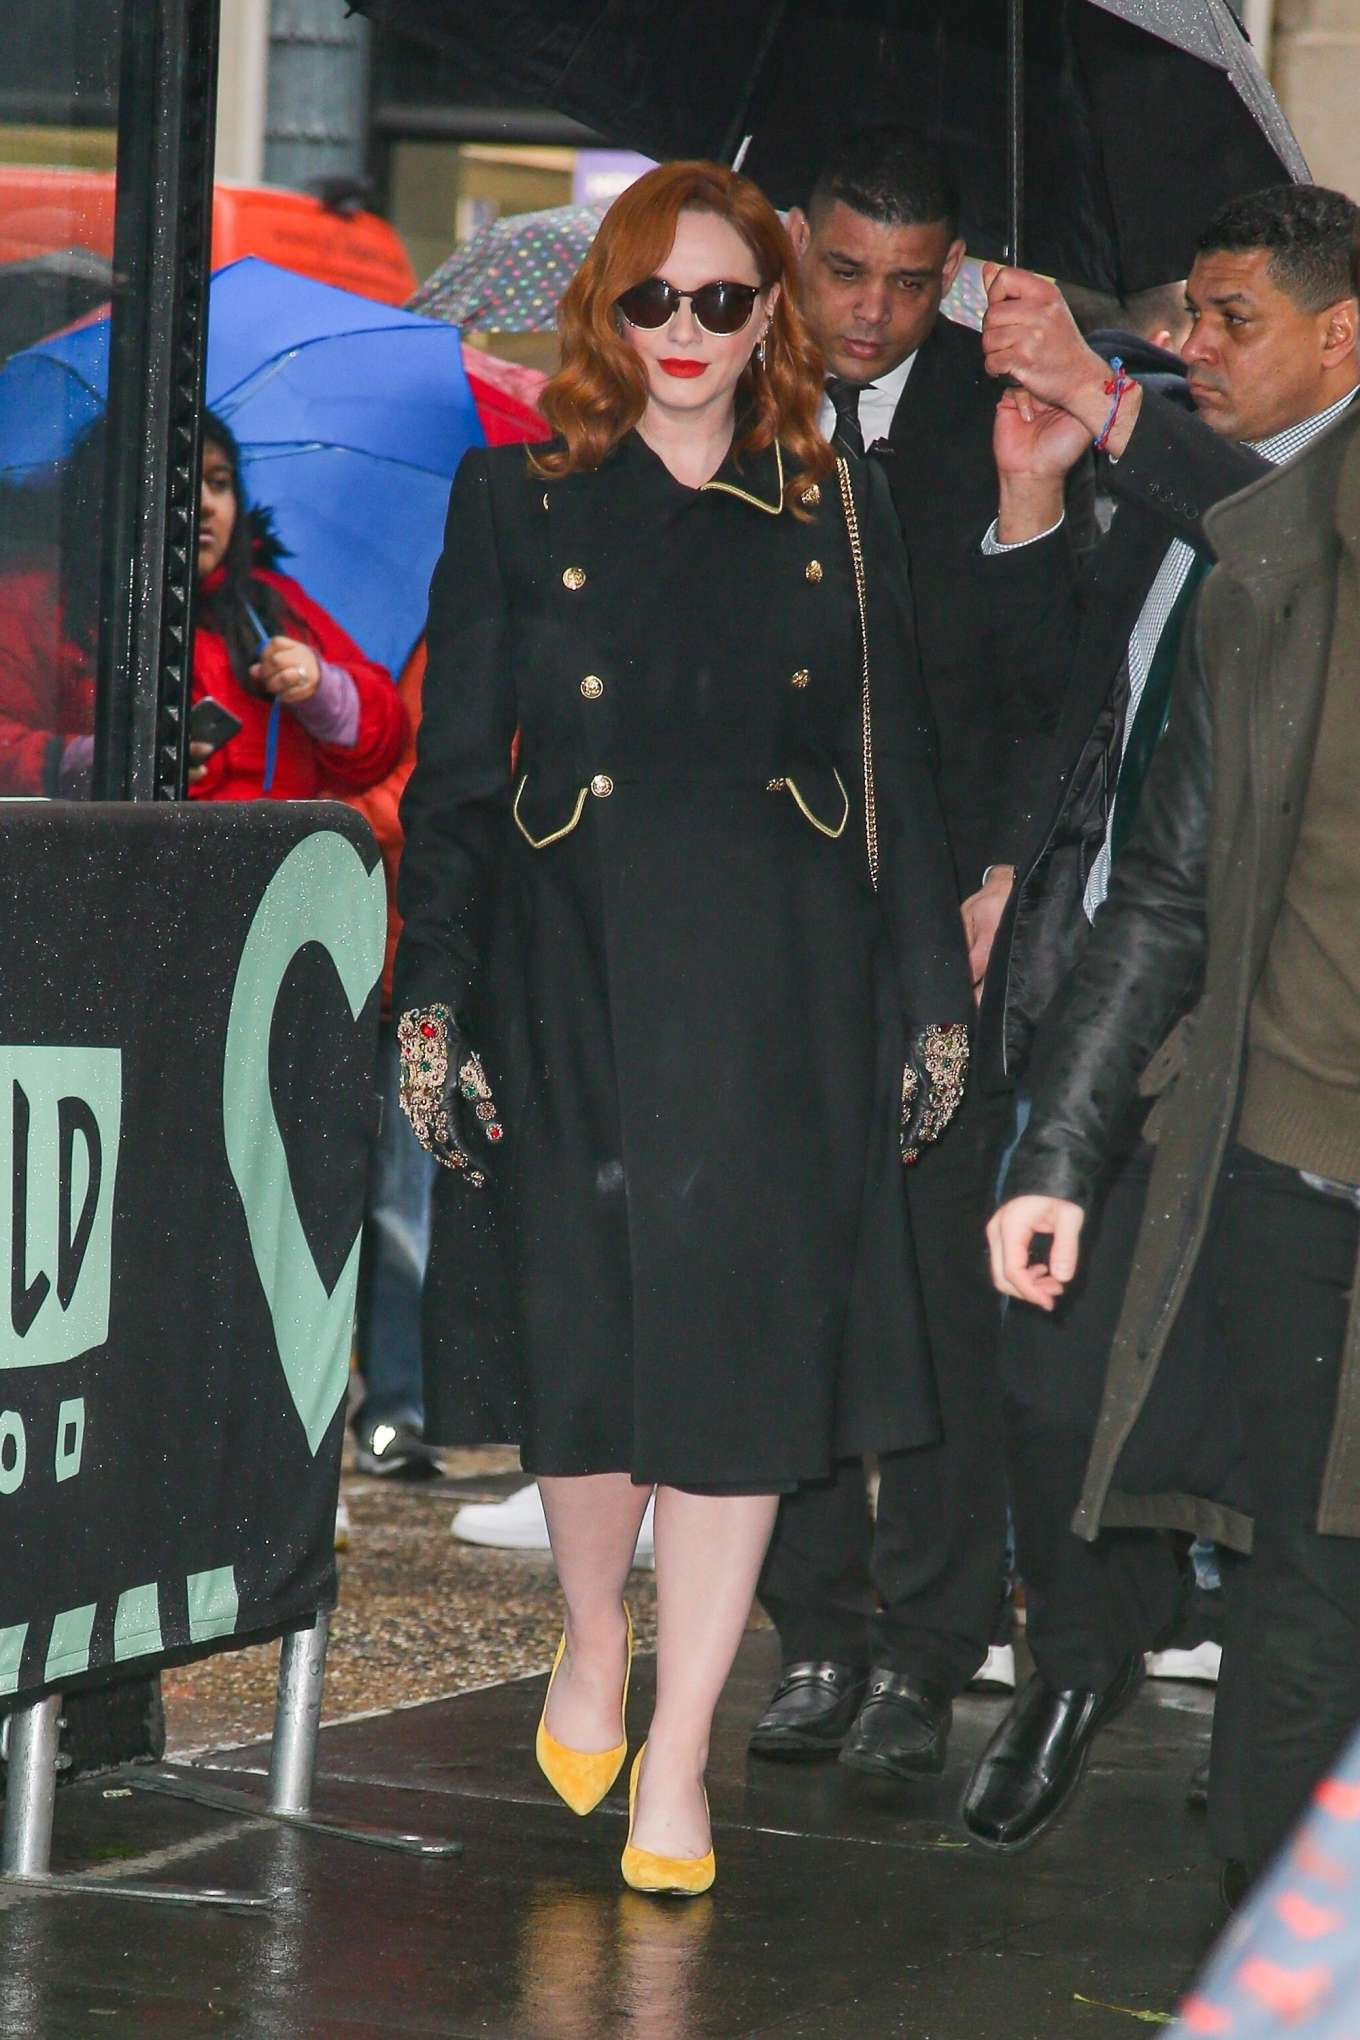 Christina Hendricks 2020 : Christina Hendricks – Spotted at Build Series while promoting her work-01